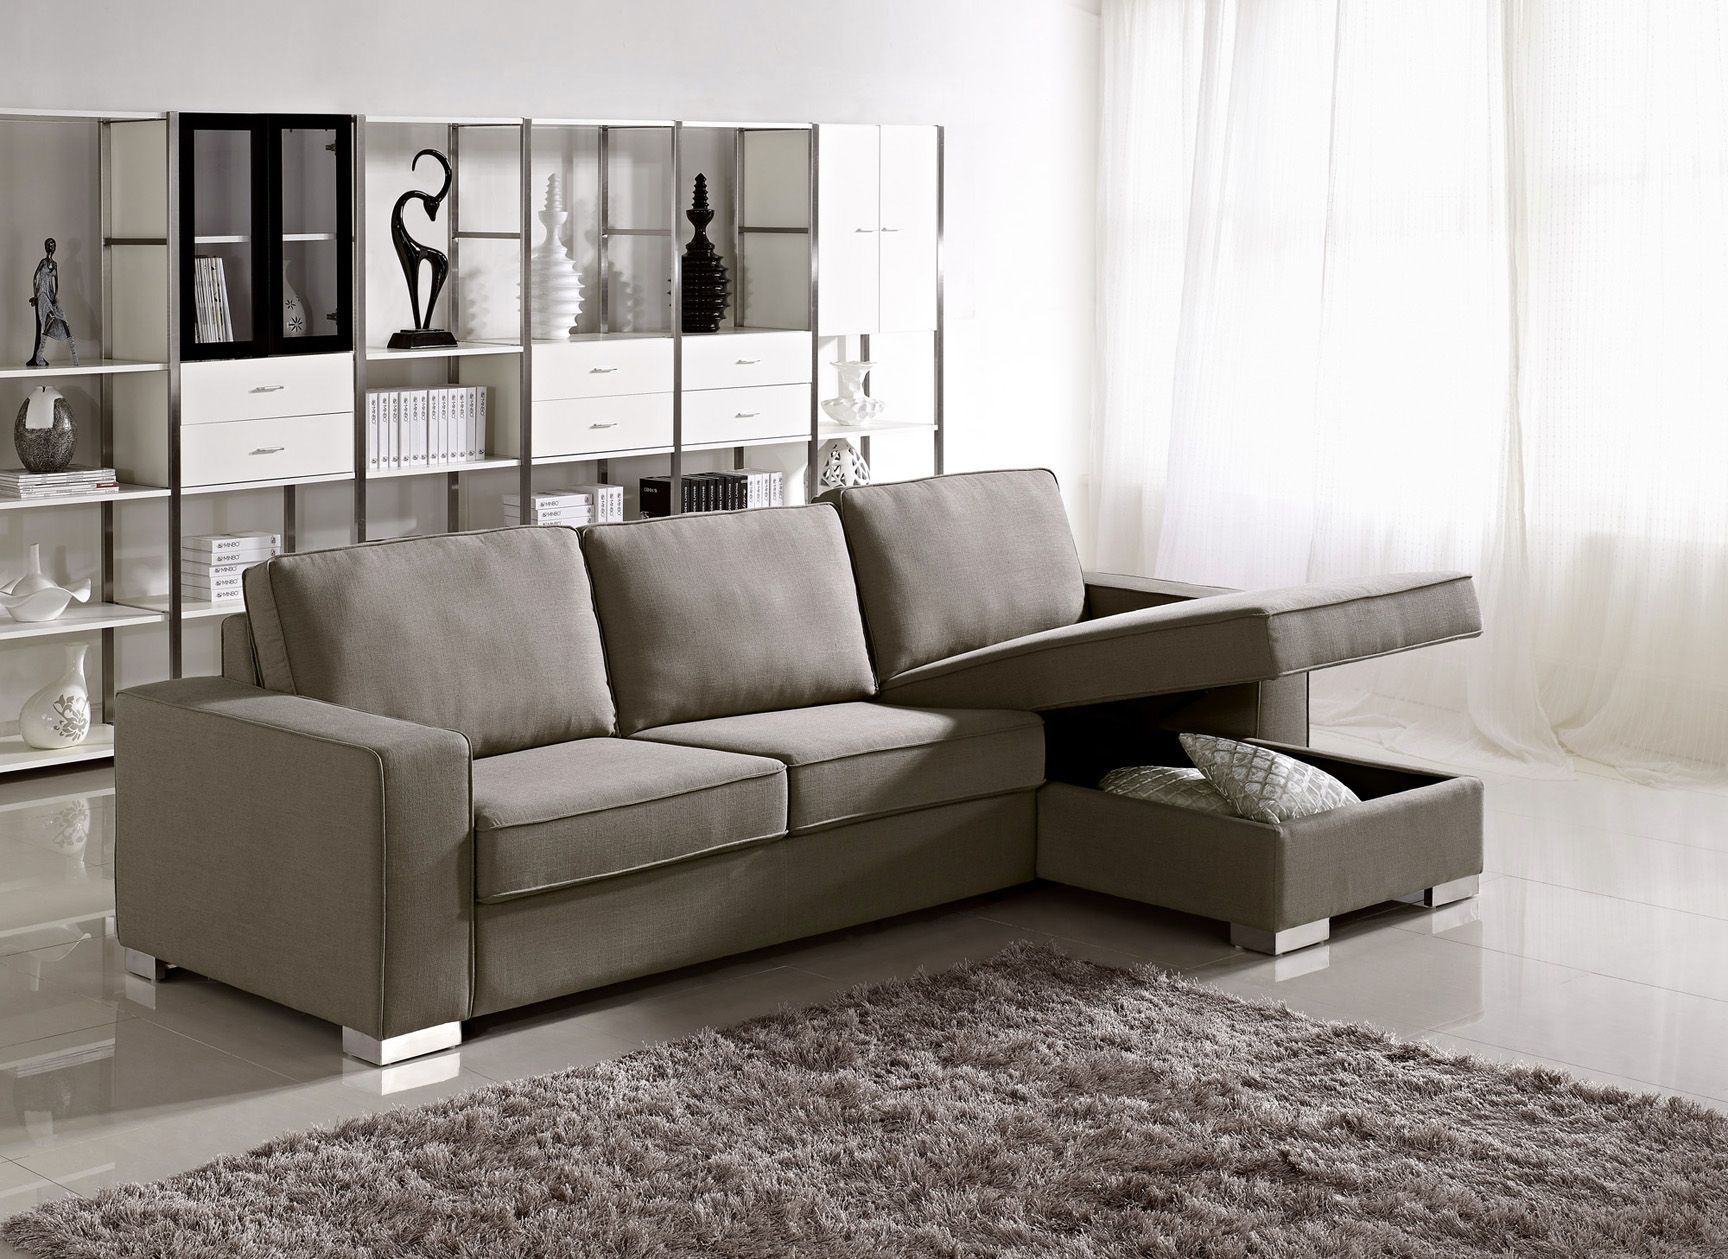 Bust of The Best Apartment Sectional Sofas Solving Function and Style Issues : sectional apartment sofa - Sectionals, Sofas & Couches